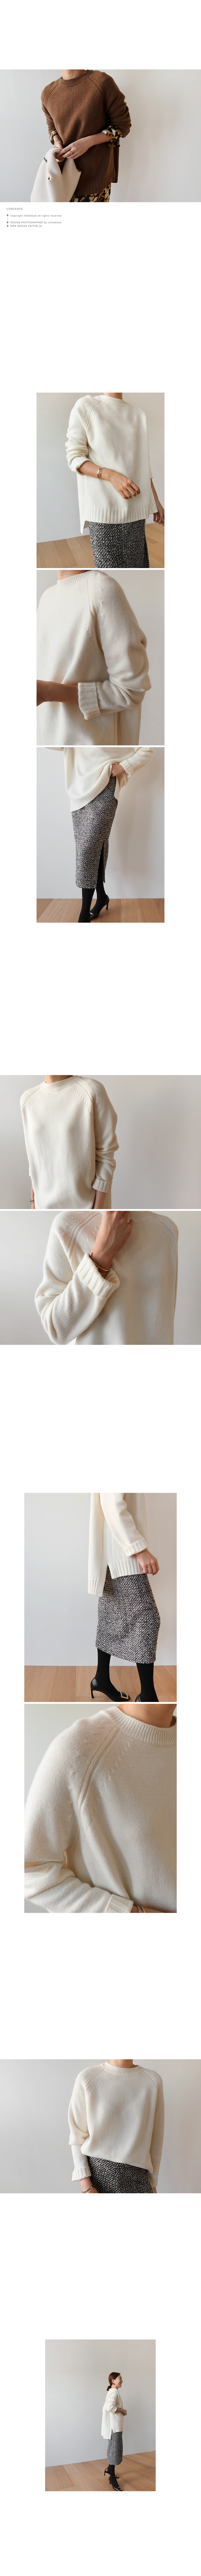 Relaxed Fit Knit Pullover|